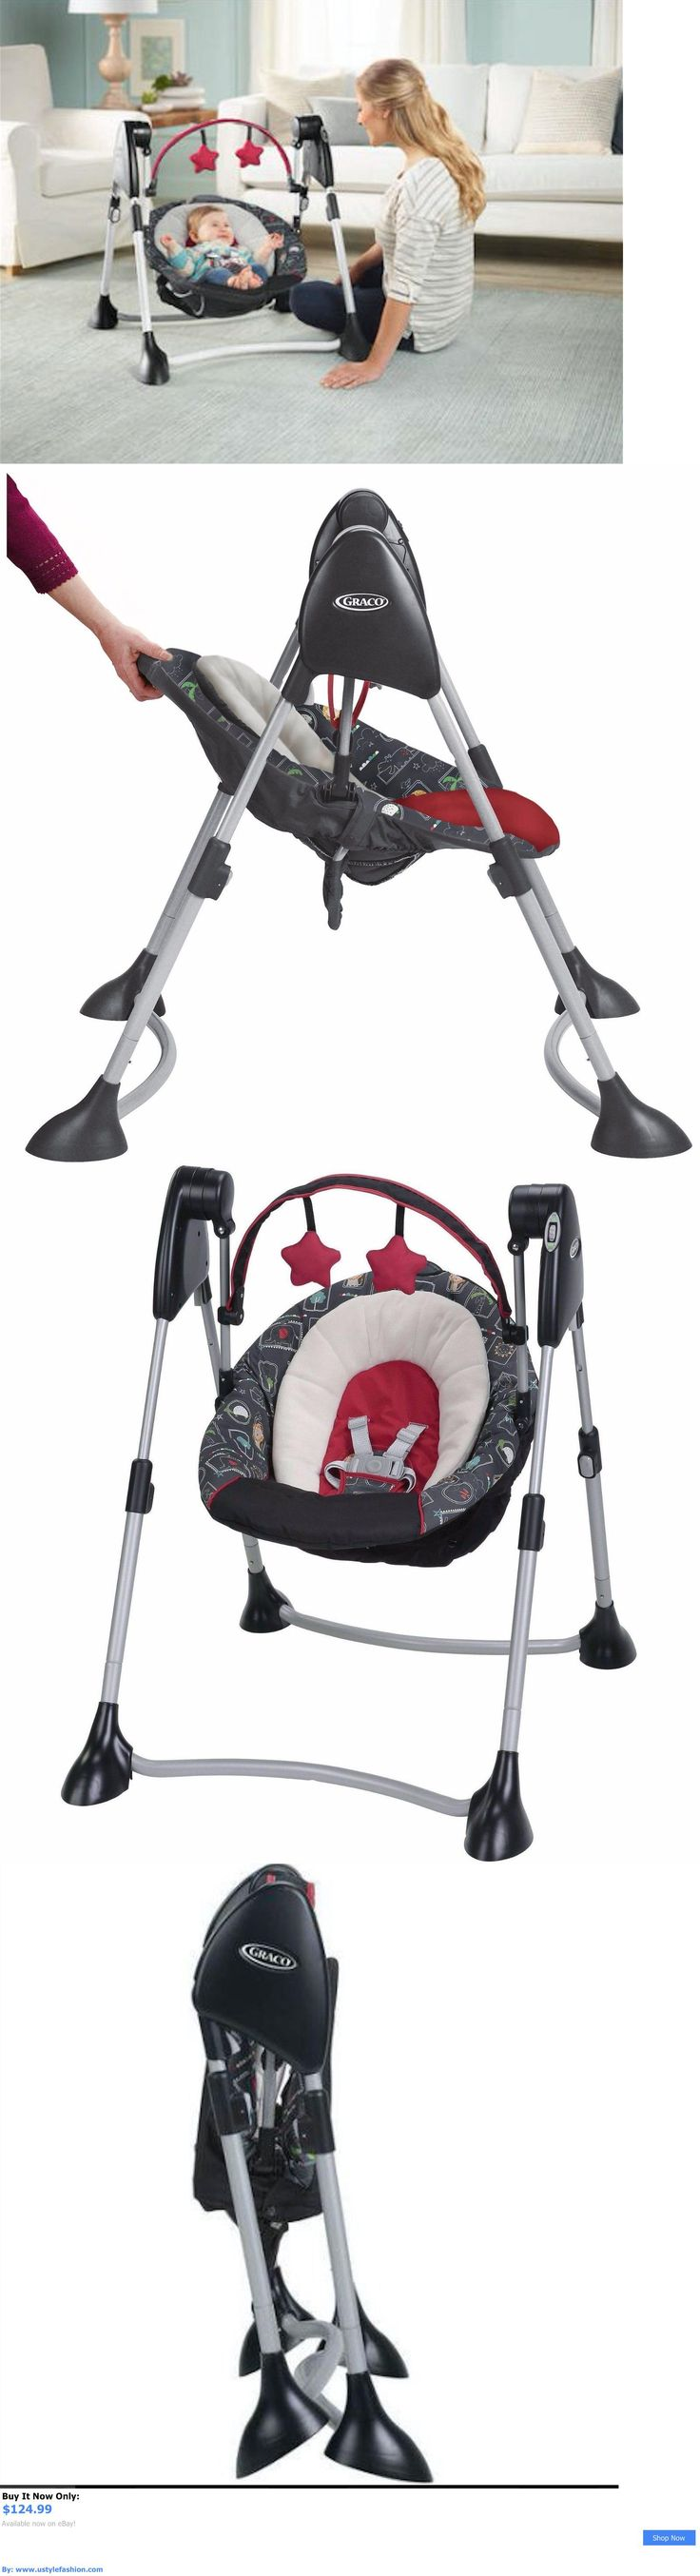 Baby swings: Baby Swing Portable Comfort Infant Rocker Multiple Motion Compact Graco BUY IT NOW ONLY: $124.99 #ustylefashionBabyswings OR #ustylefashion